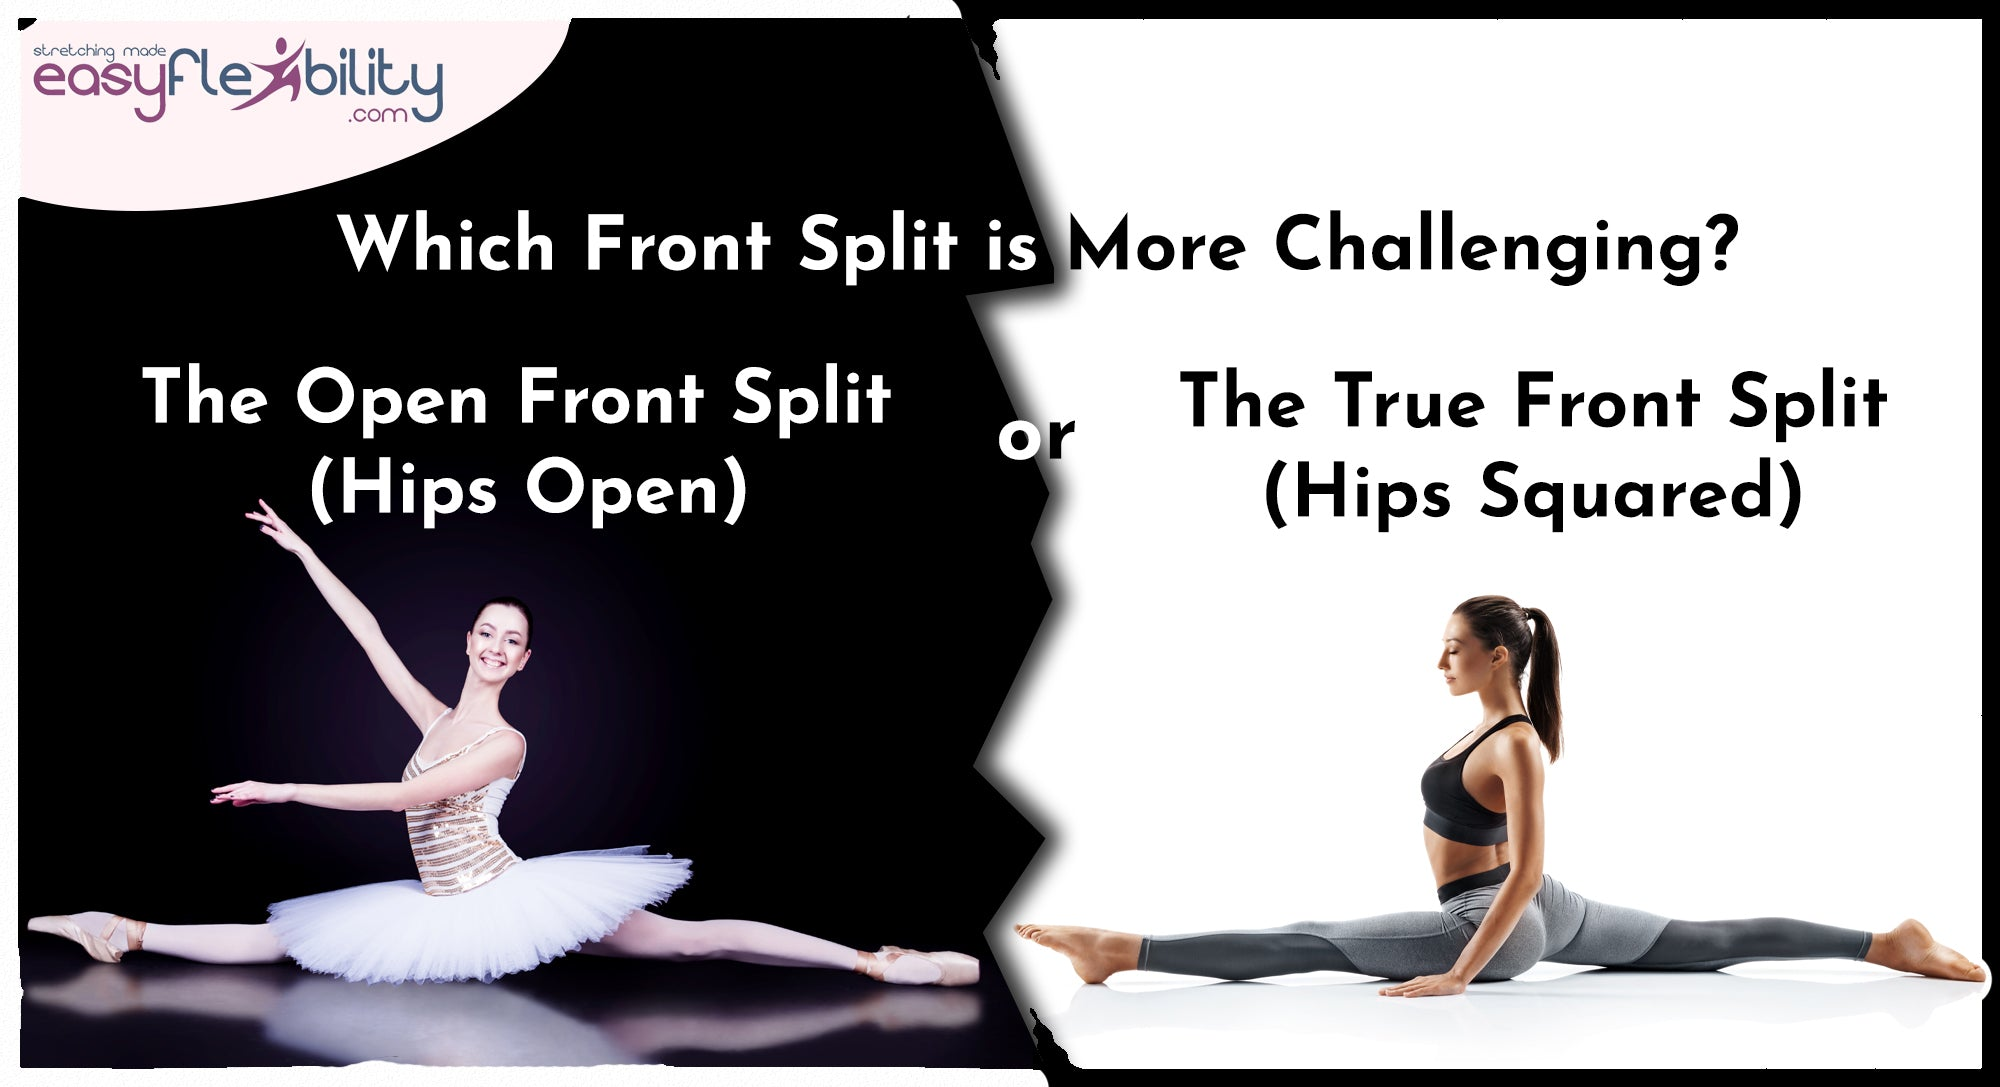 which front split is more challenging?